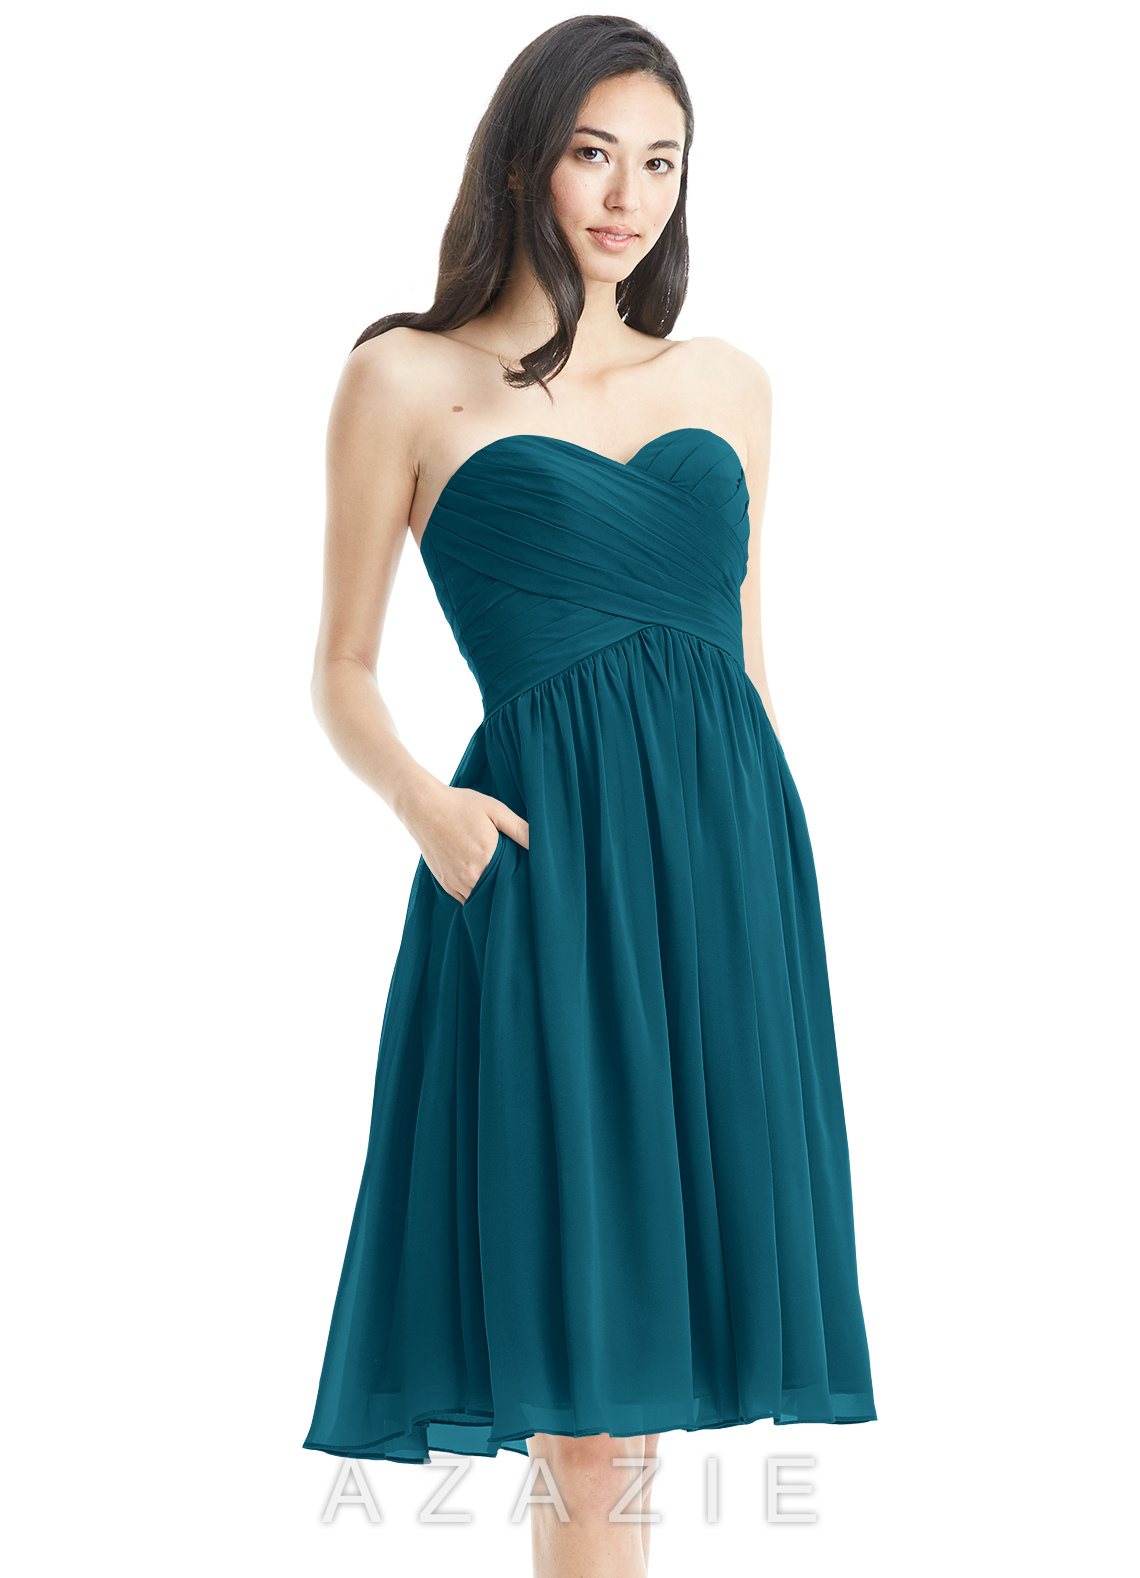 Azazie heidi bridesmaid dress azazie loading zoom ombrellifo Images